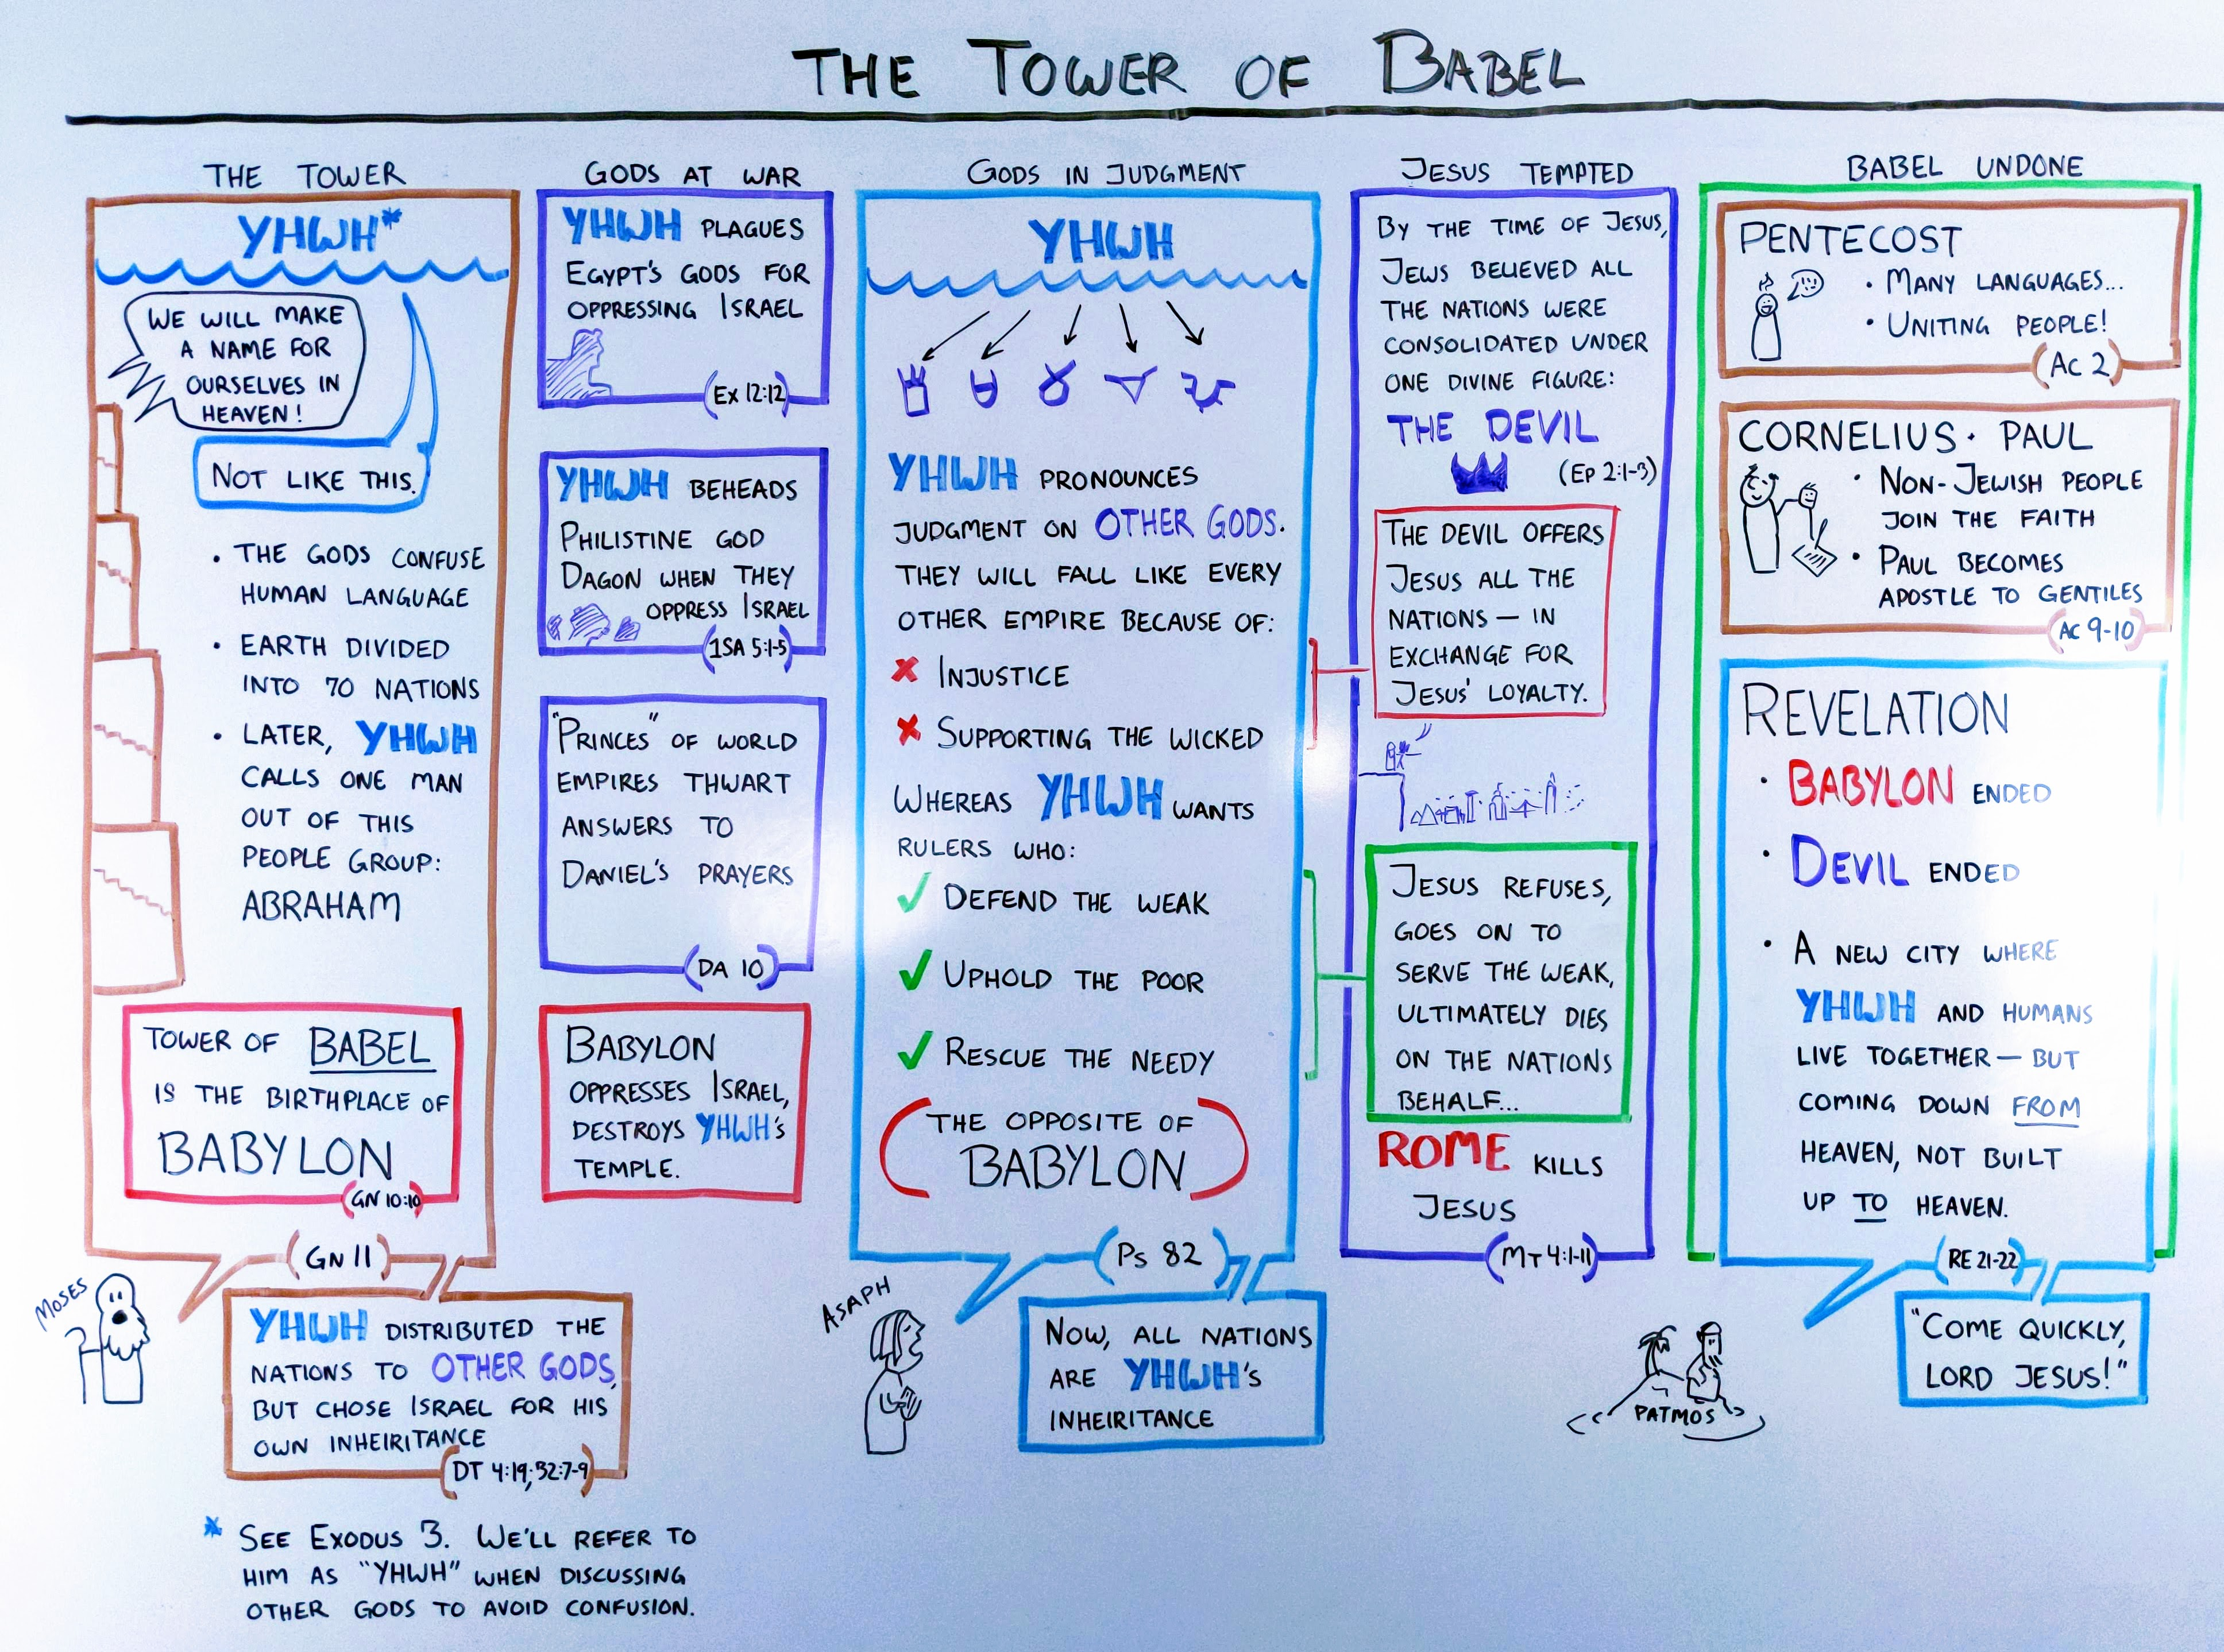 Diagram mapping the Tower of Babel theme throughout the Bible